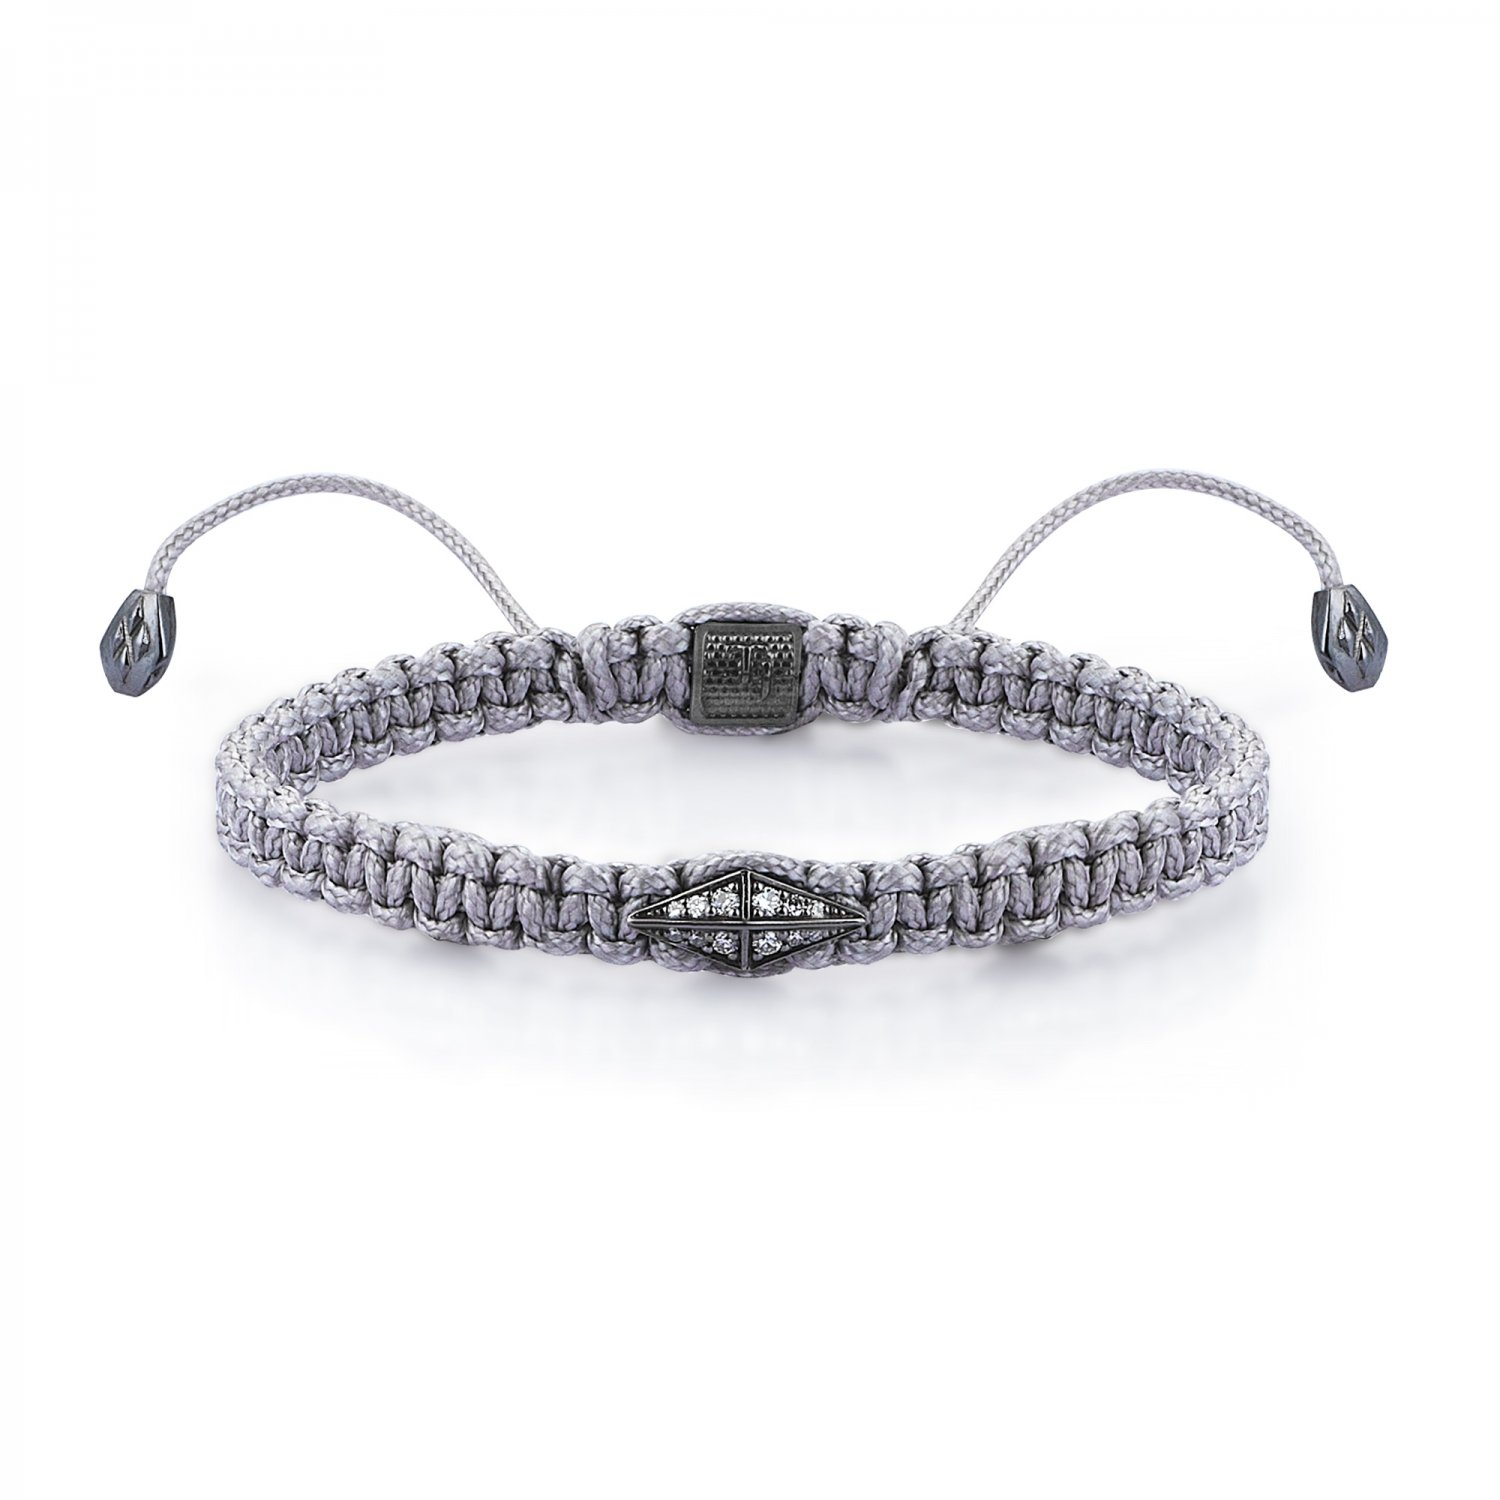 Gray Macrame Iconic Diamondback (1) Silver Bracelet in Black Rhodium with Diamonds